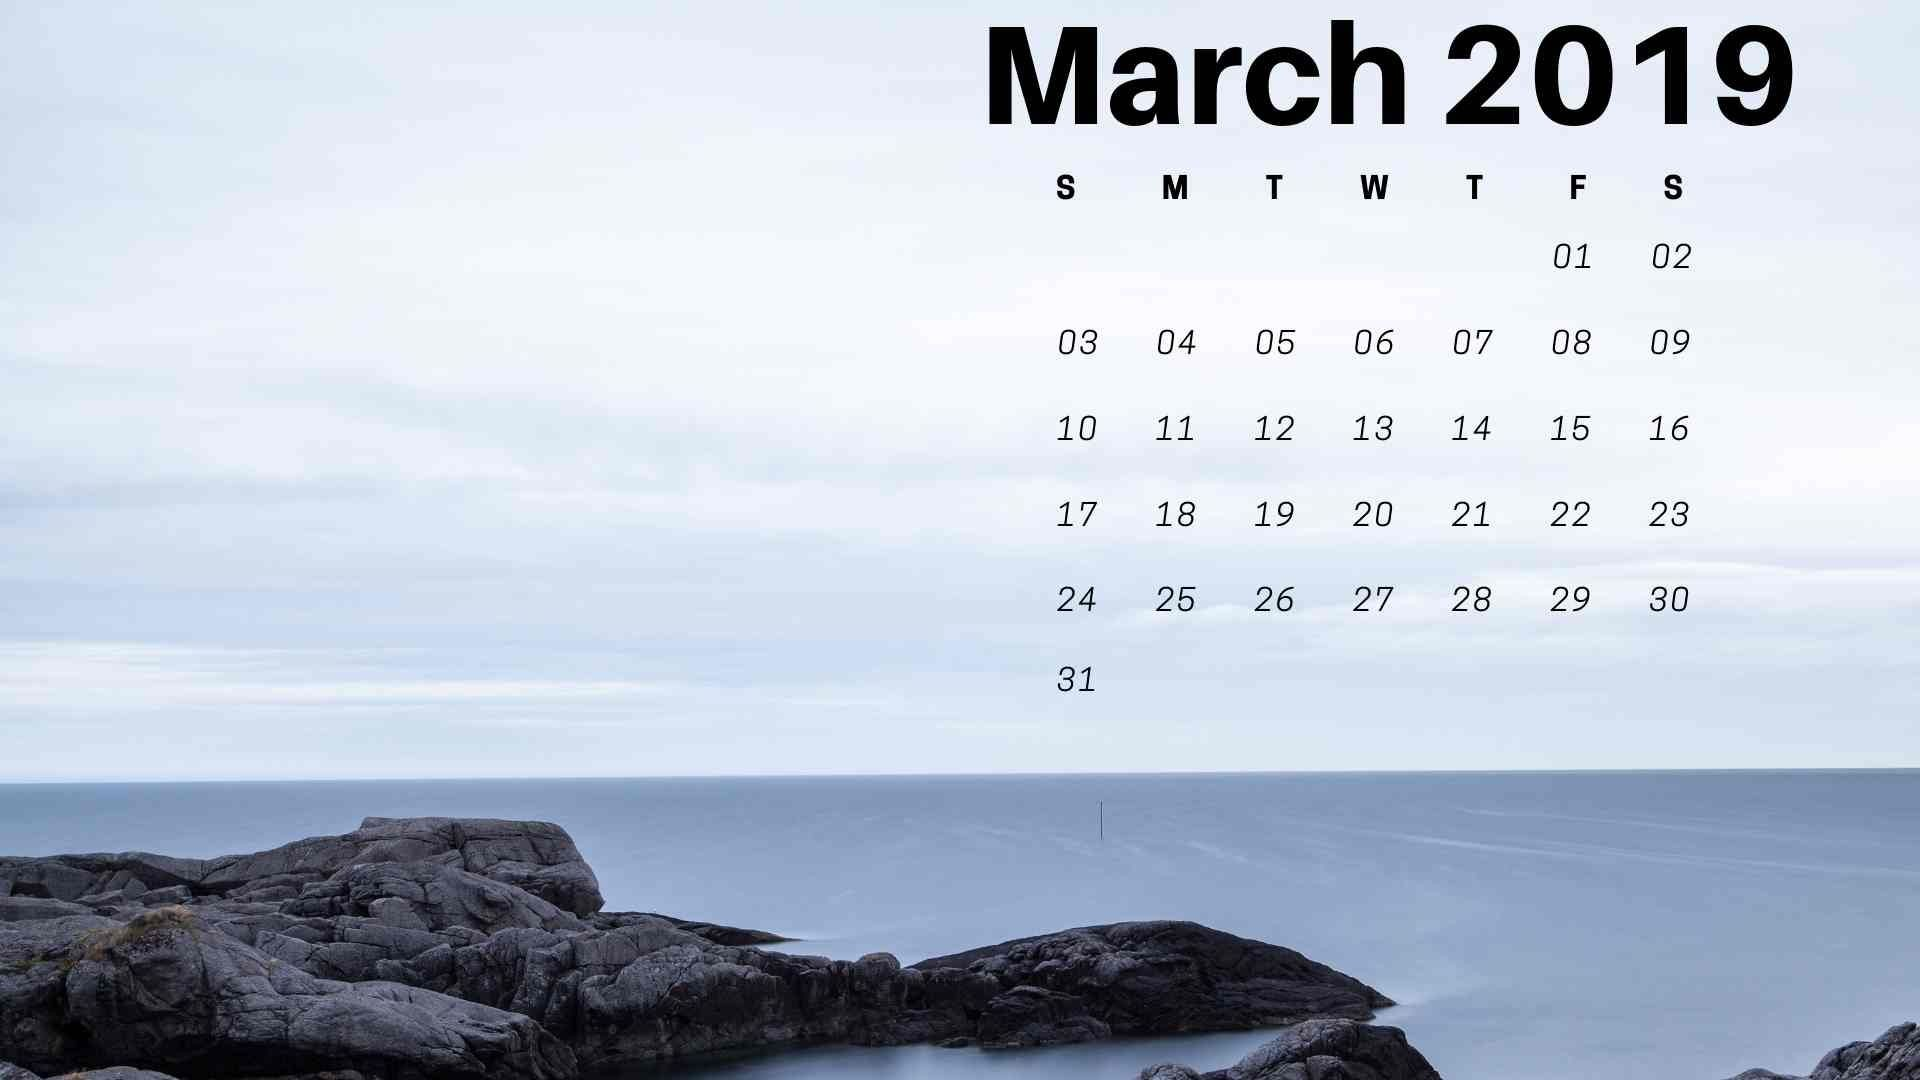 March Calendar Blank 2019 Más Recientes March 2019 Calendar Wallpaper Desktop March Calendar Calenda2019 Of March Calendar Blank 2019 Más Recientes Lagunitas Announces 2018 Release Calendar Willitized Coffee Stout